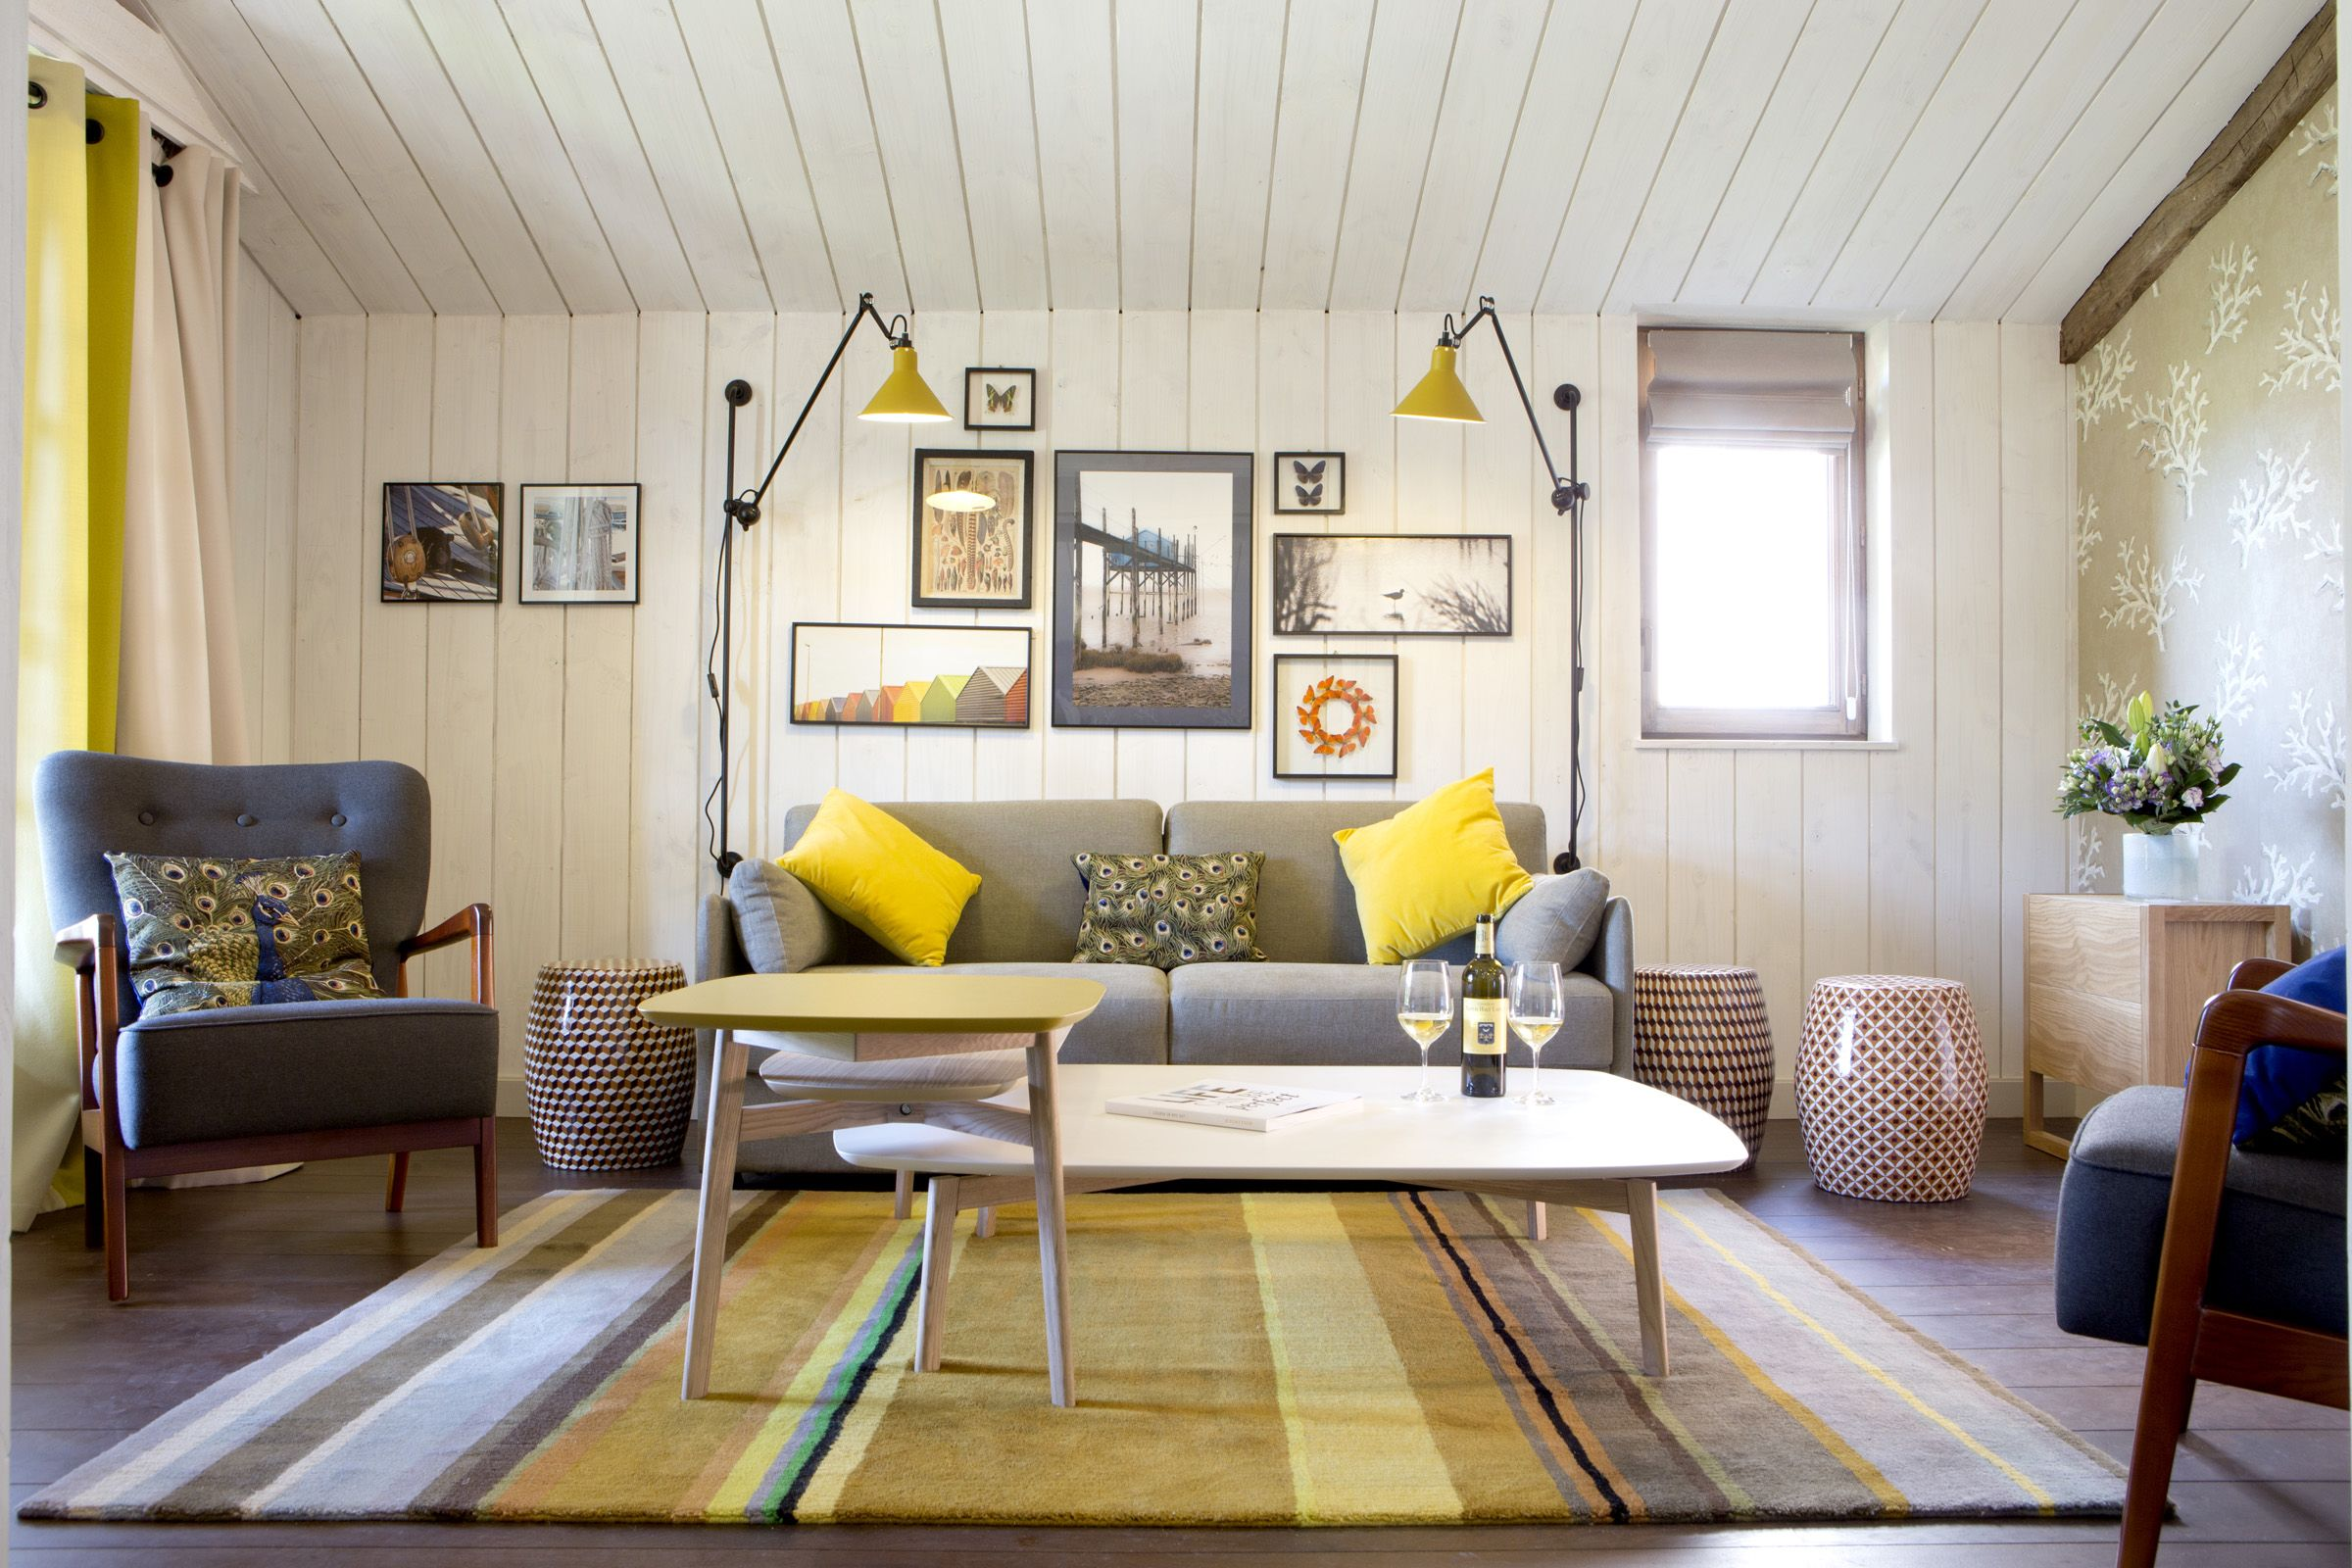 Pin By Chantal Leclerc On ديكور Home Decor Red Sofa Living Room Home